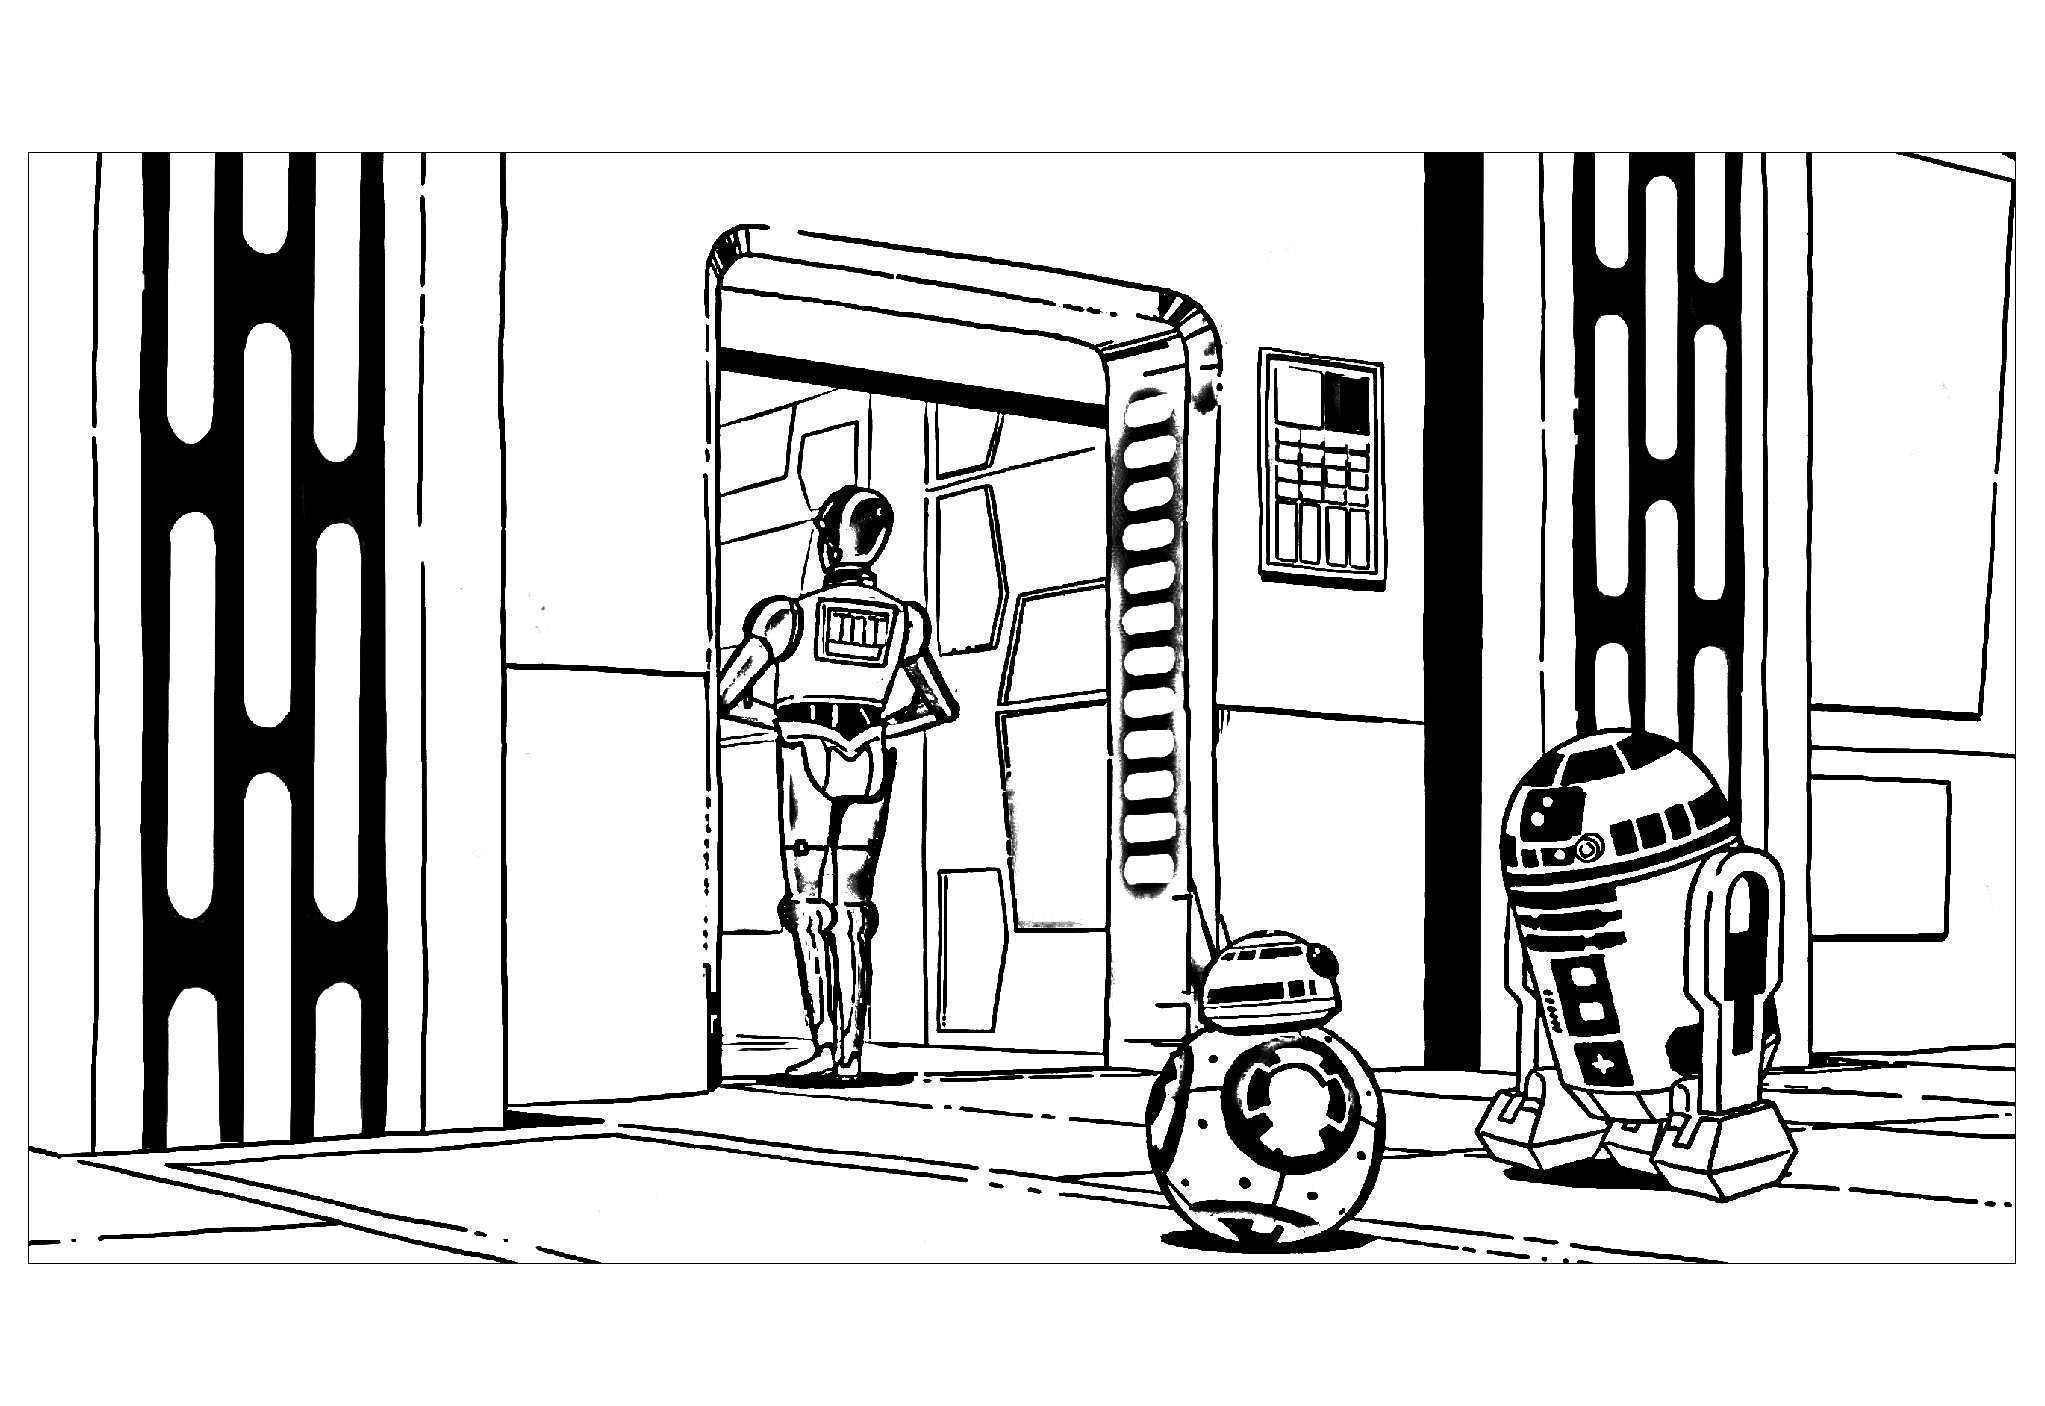 R2D2 Coloring Pages - Best Coloring Pages For Kids